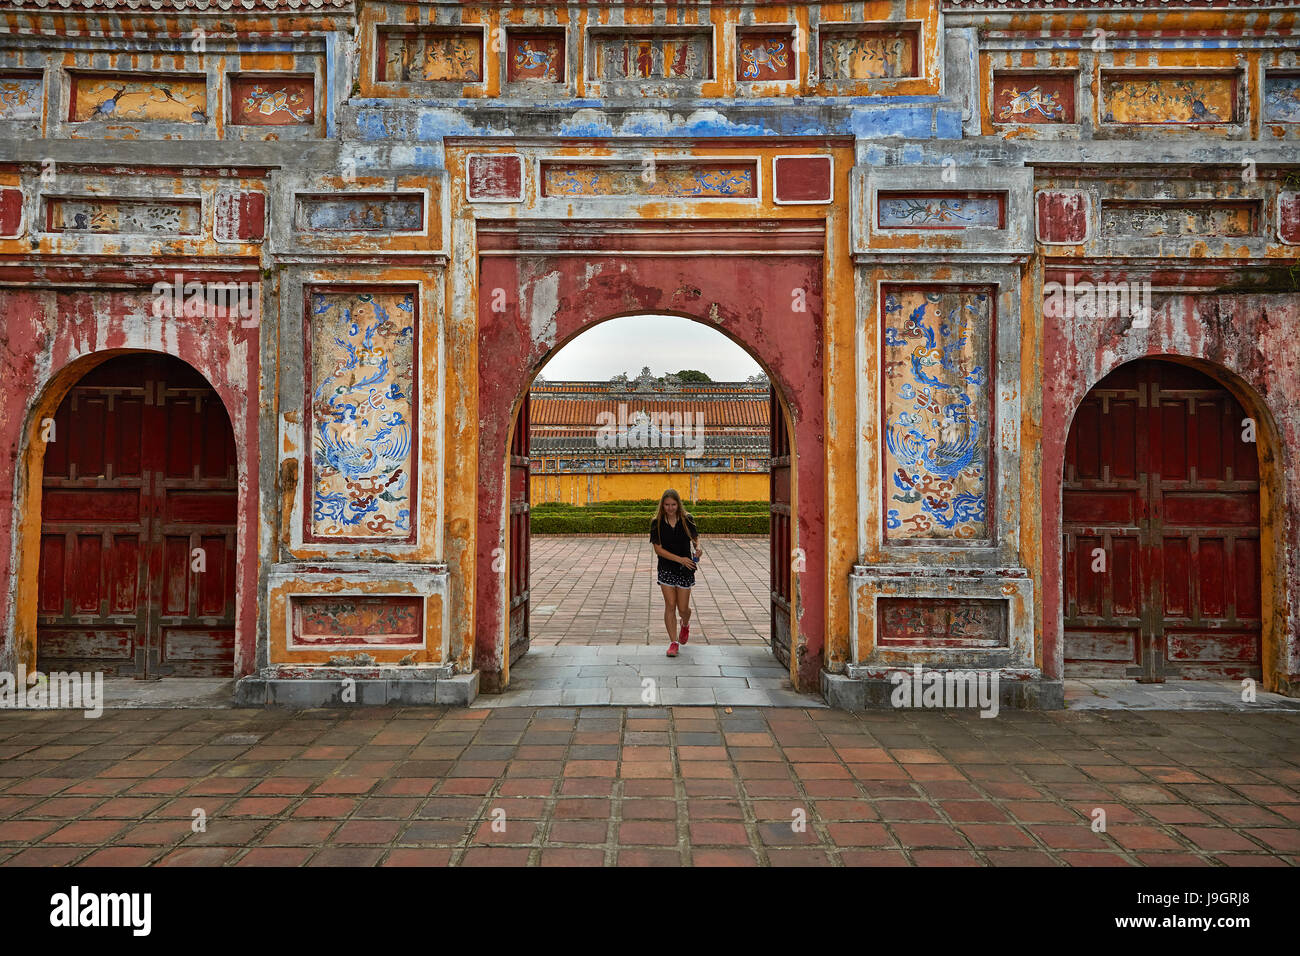 Tourist at Cua Tho Chi gate, historic Hue Citadel (Imperial City), Hue, North Central Coast, Vietnam (MR) Stock Photo